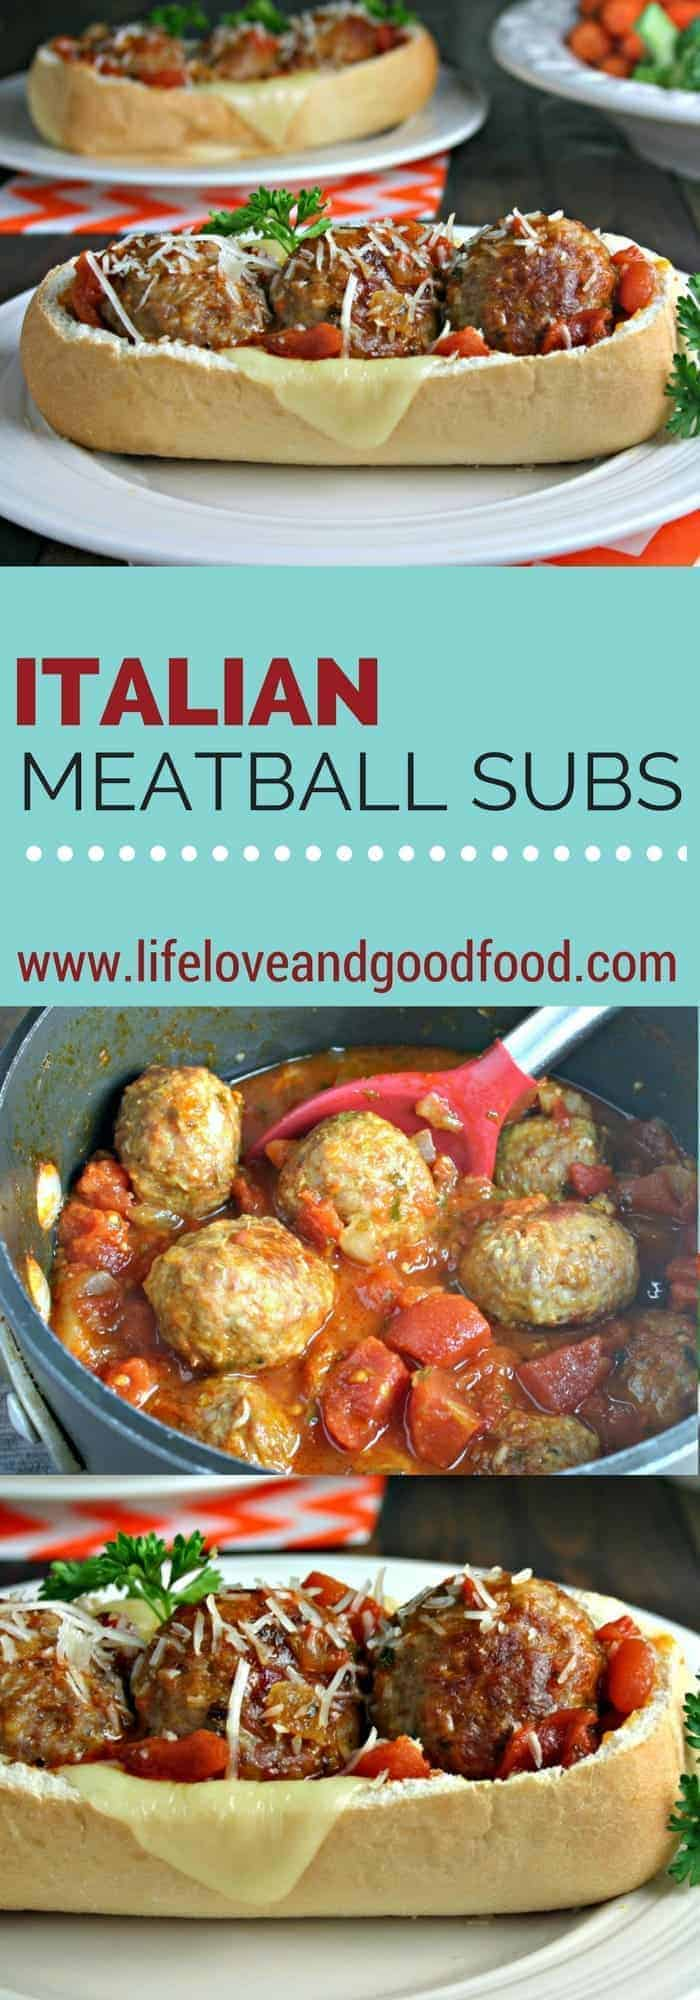 A close up of a plate of food on a table, with Italian Meatball Subs